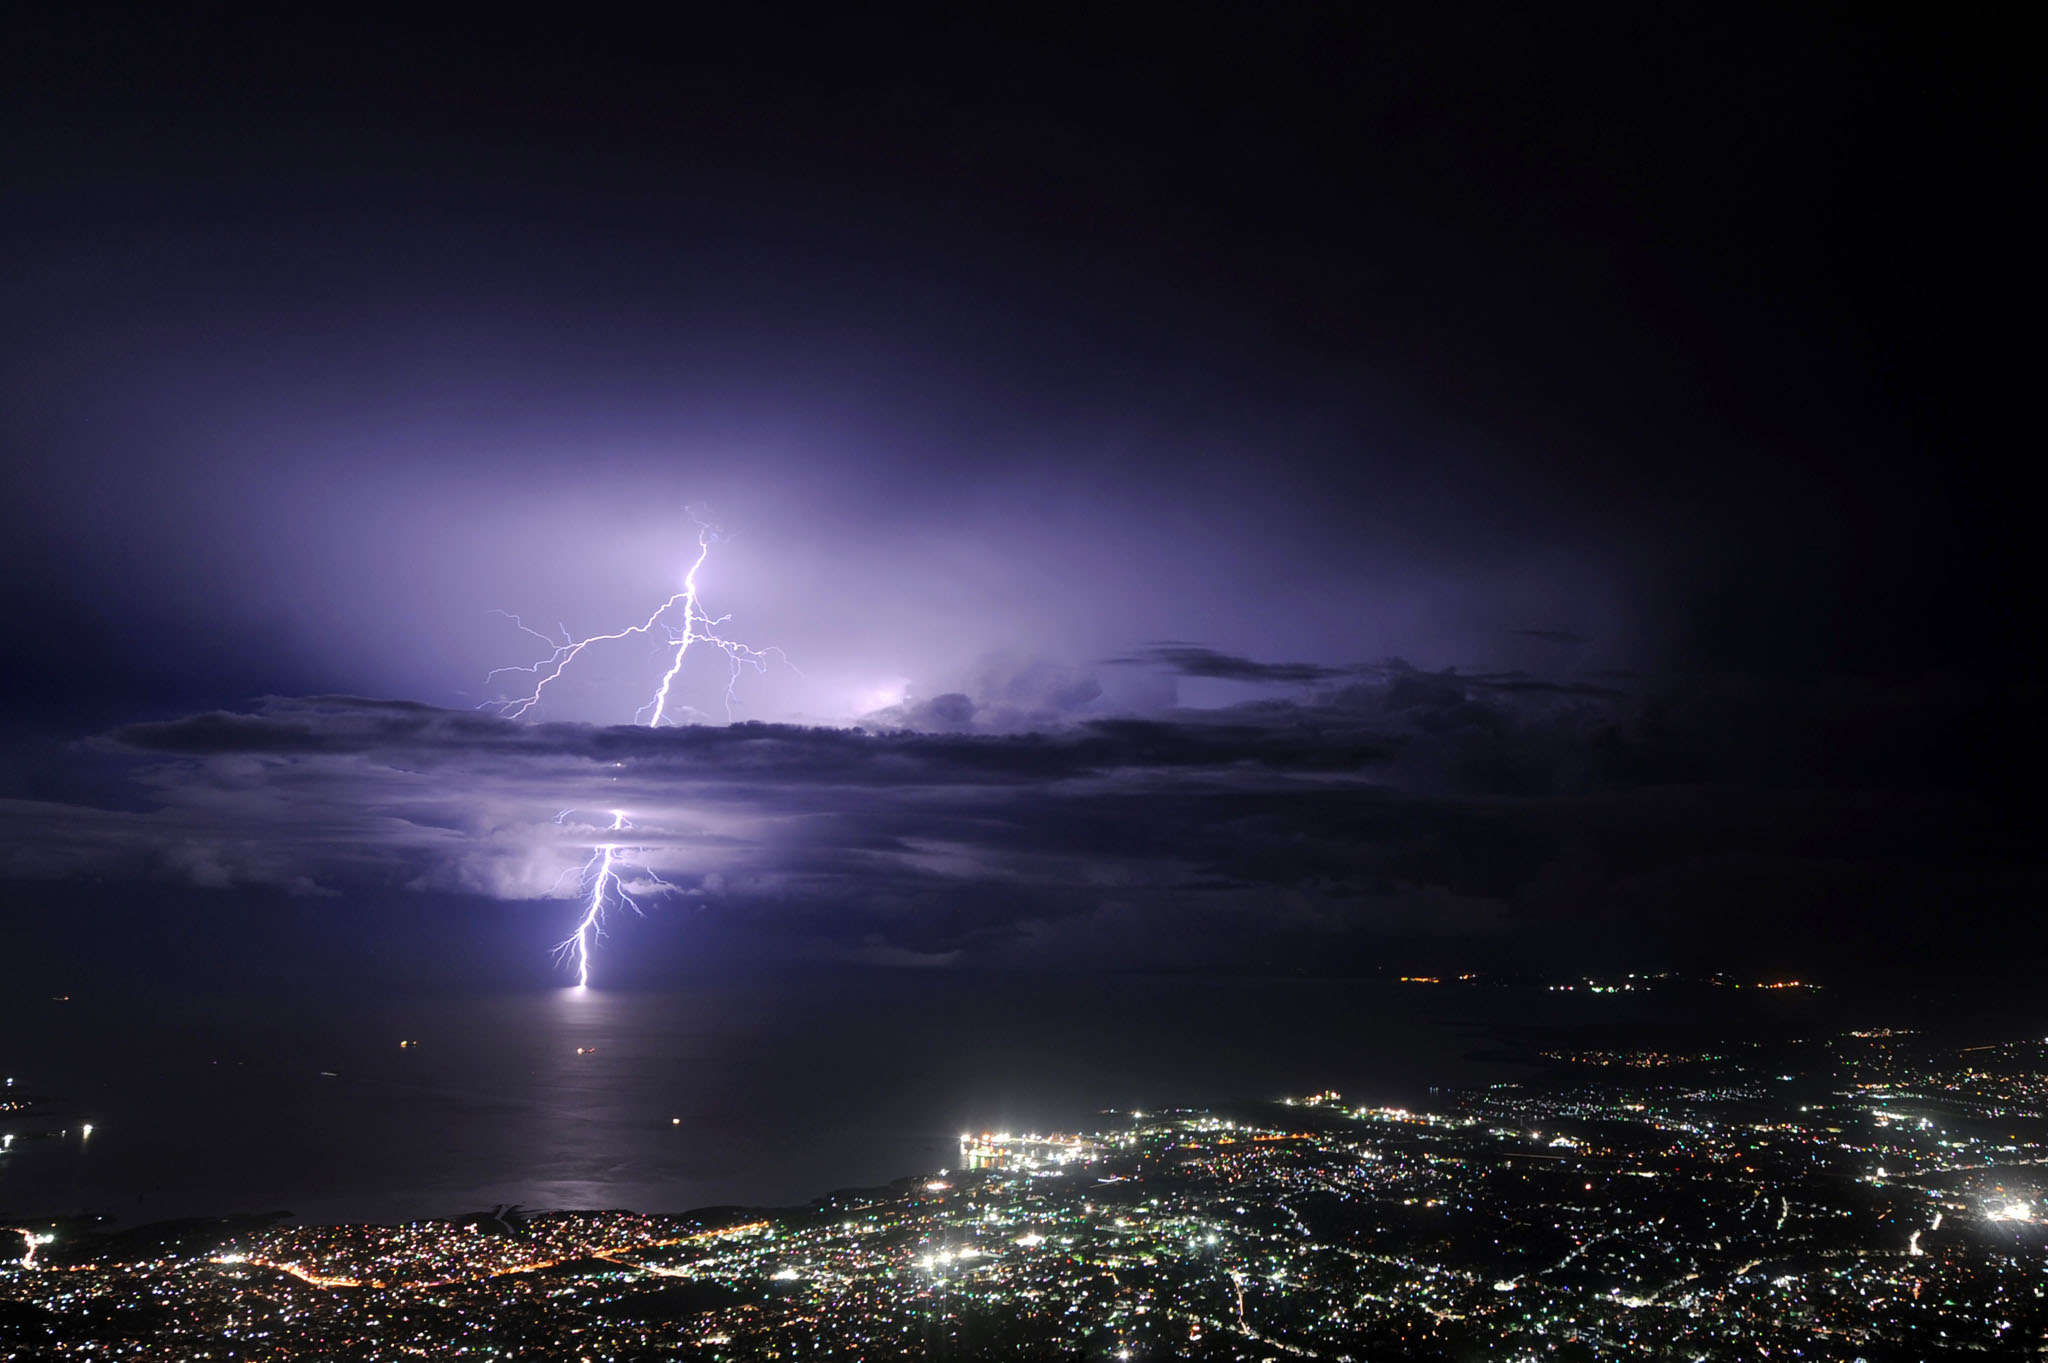 Lightning strikes over the sea along the...Lightning strikes over the sea along the coast of the Haitian capital, Port au Prince,  during an evening thunderstorm on September 24, 2014